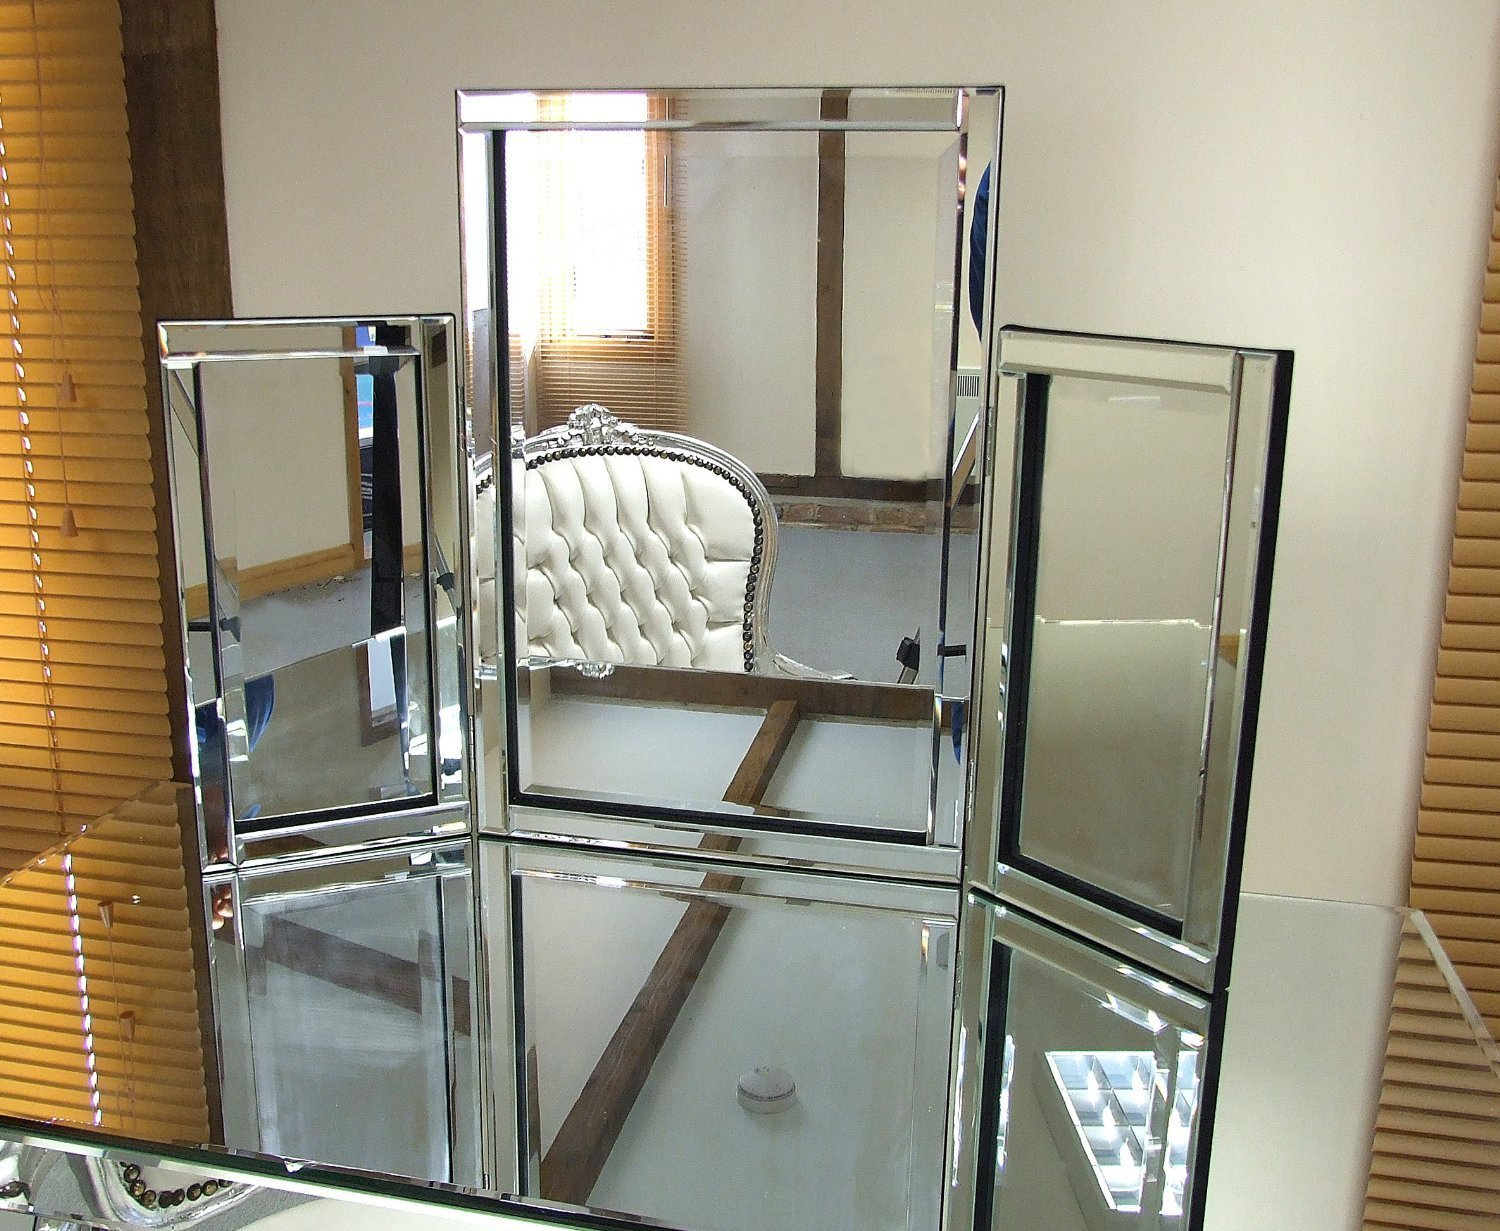 Dressing Table Mirror Modern Clear Venetian Tri Fold Free Standing Bedroom  Kelsey Stores Ltd: Amazon.co.uk: Kitchen U0026 Home